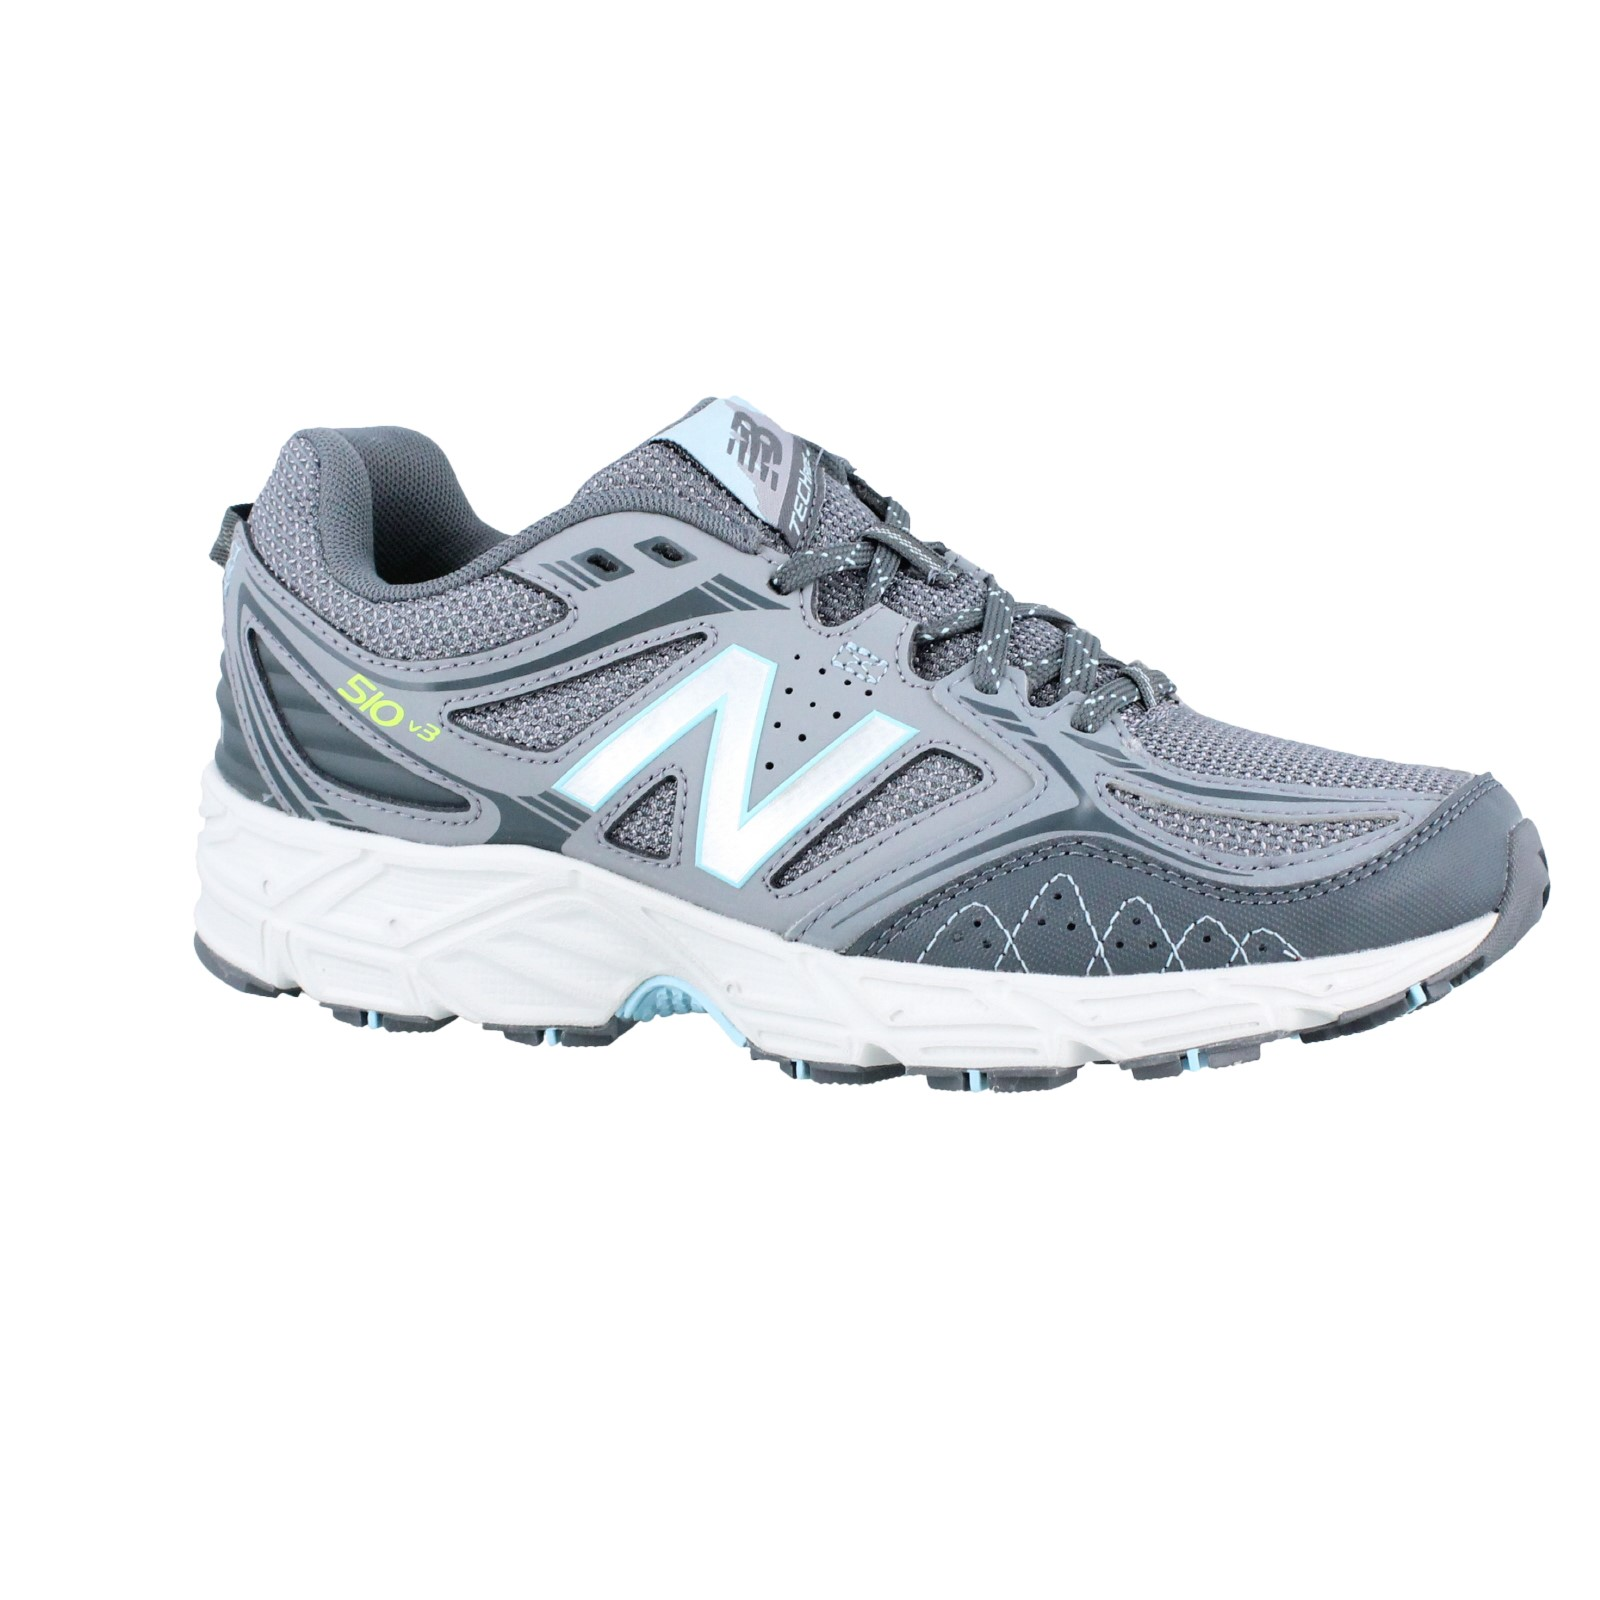 7fab14374a53 Next. add to favorites. Women s New Balance